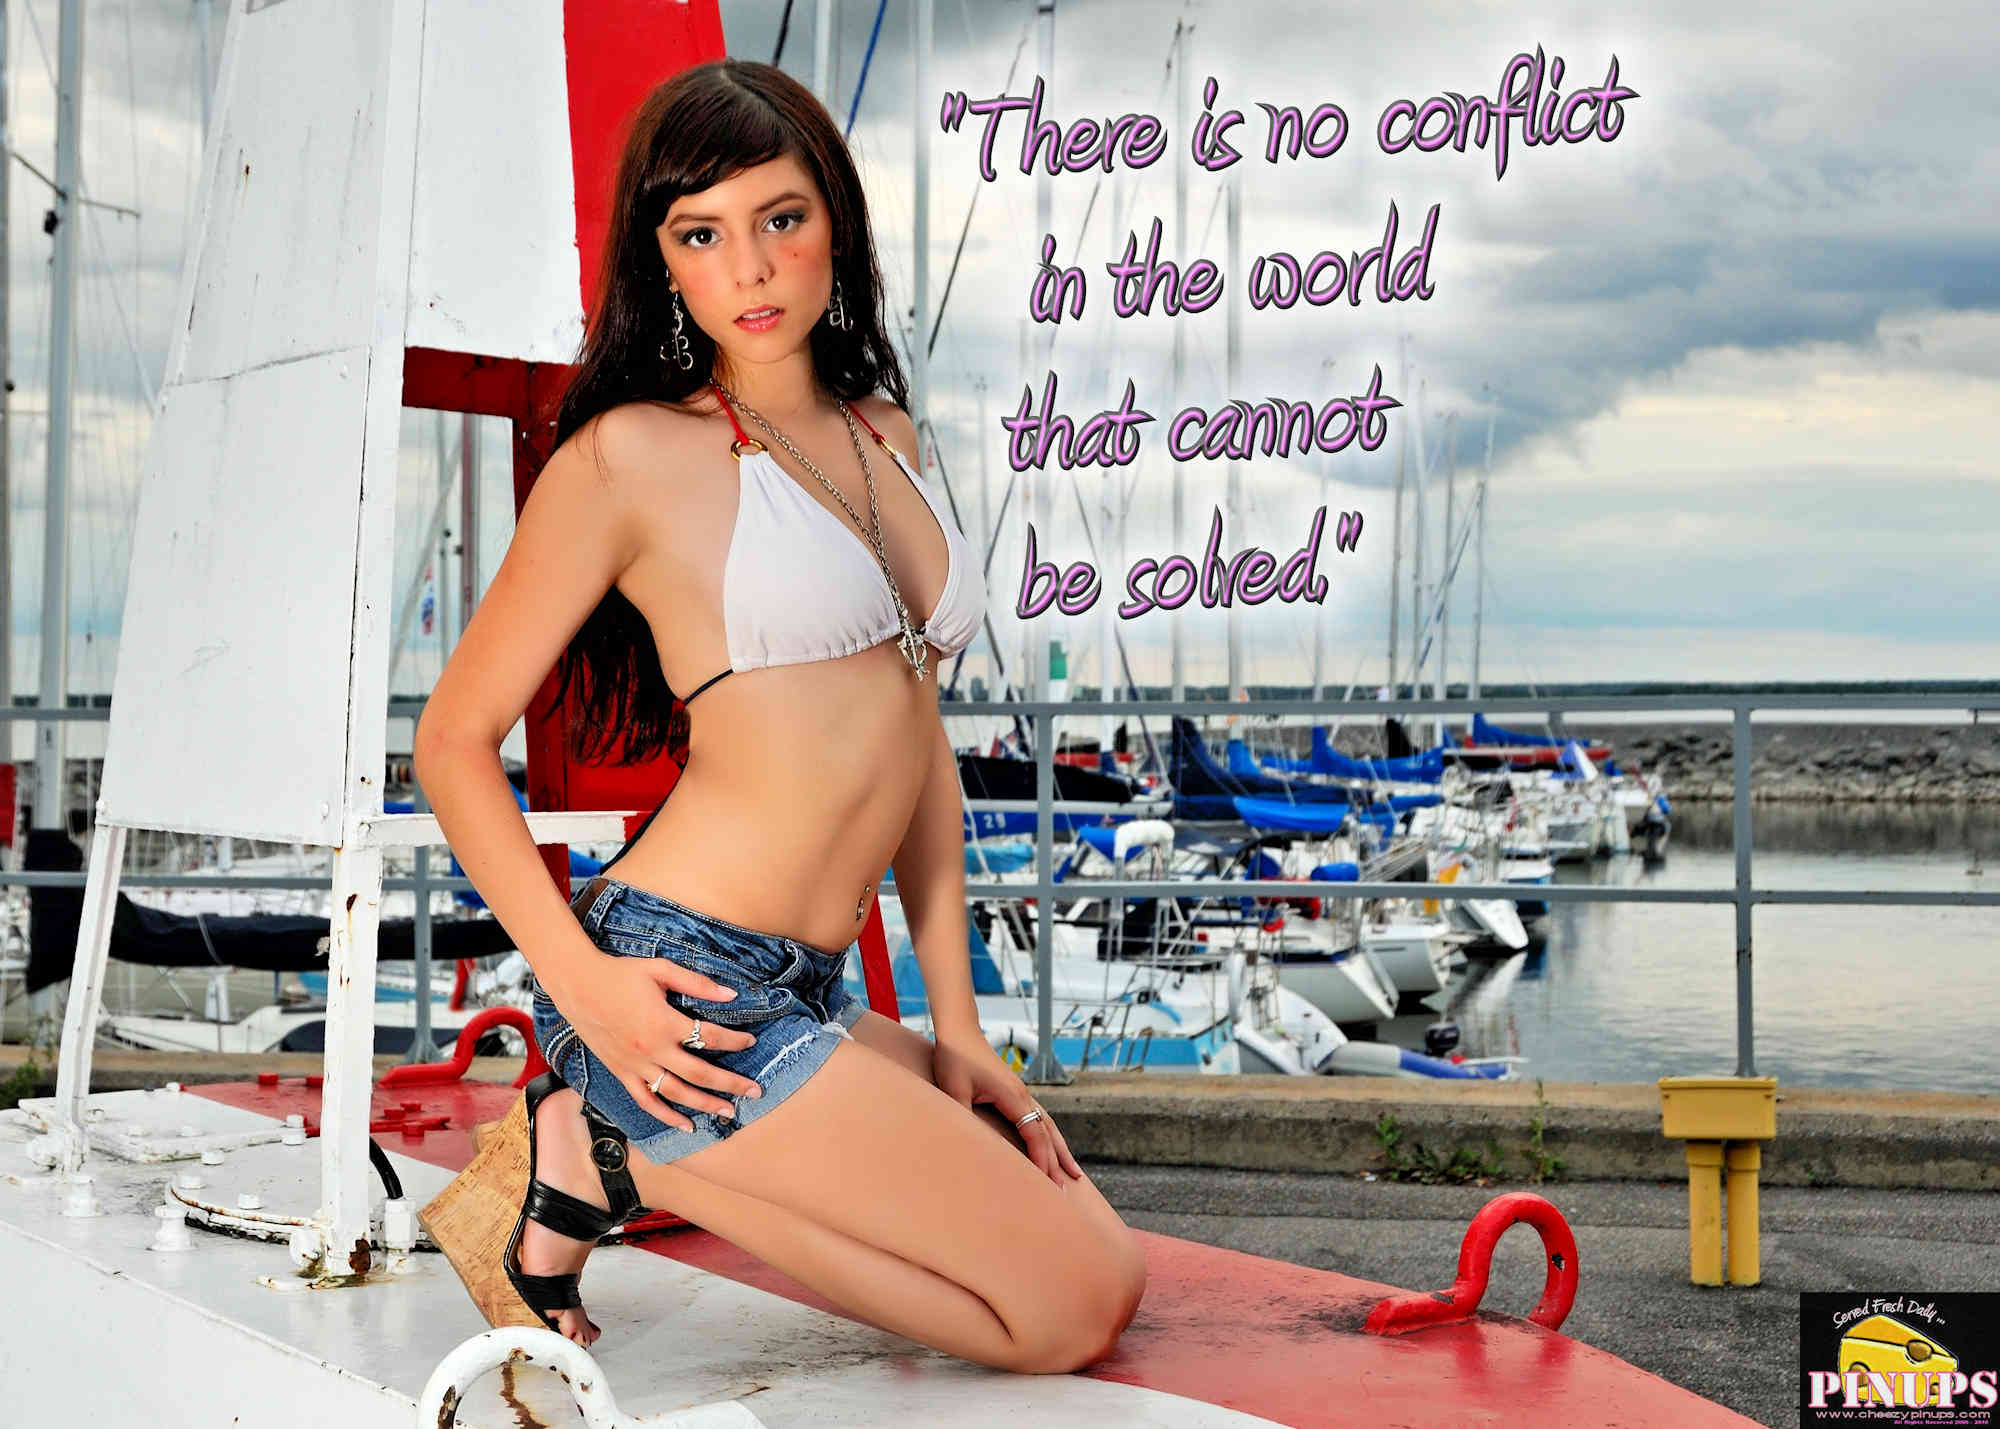 "Cheezy Pinup - August 14, 2018   ""There is no conflict in the world that cannot be solved."" - Jonathan Powell Model: CarolAnn"